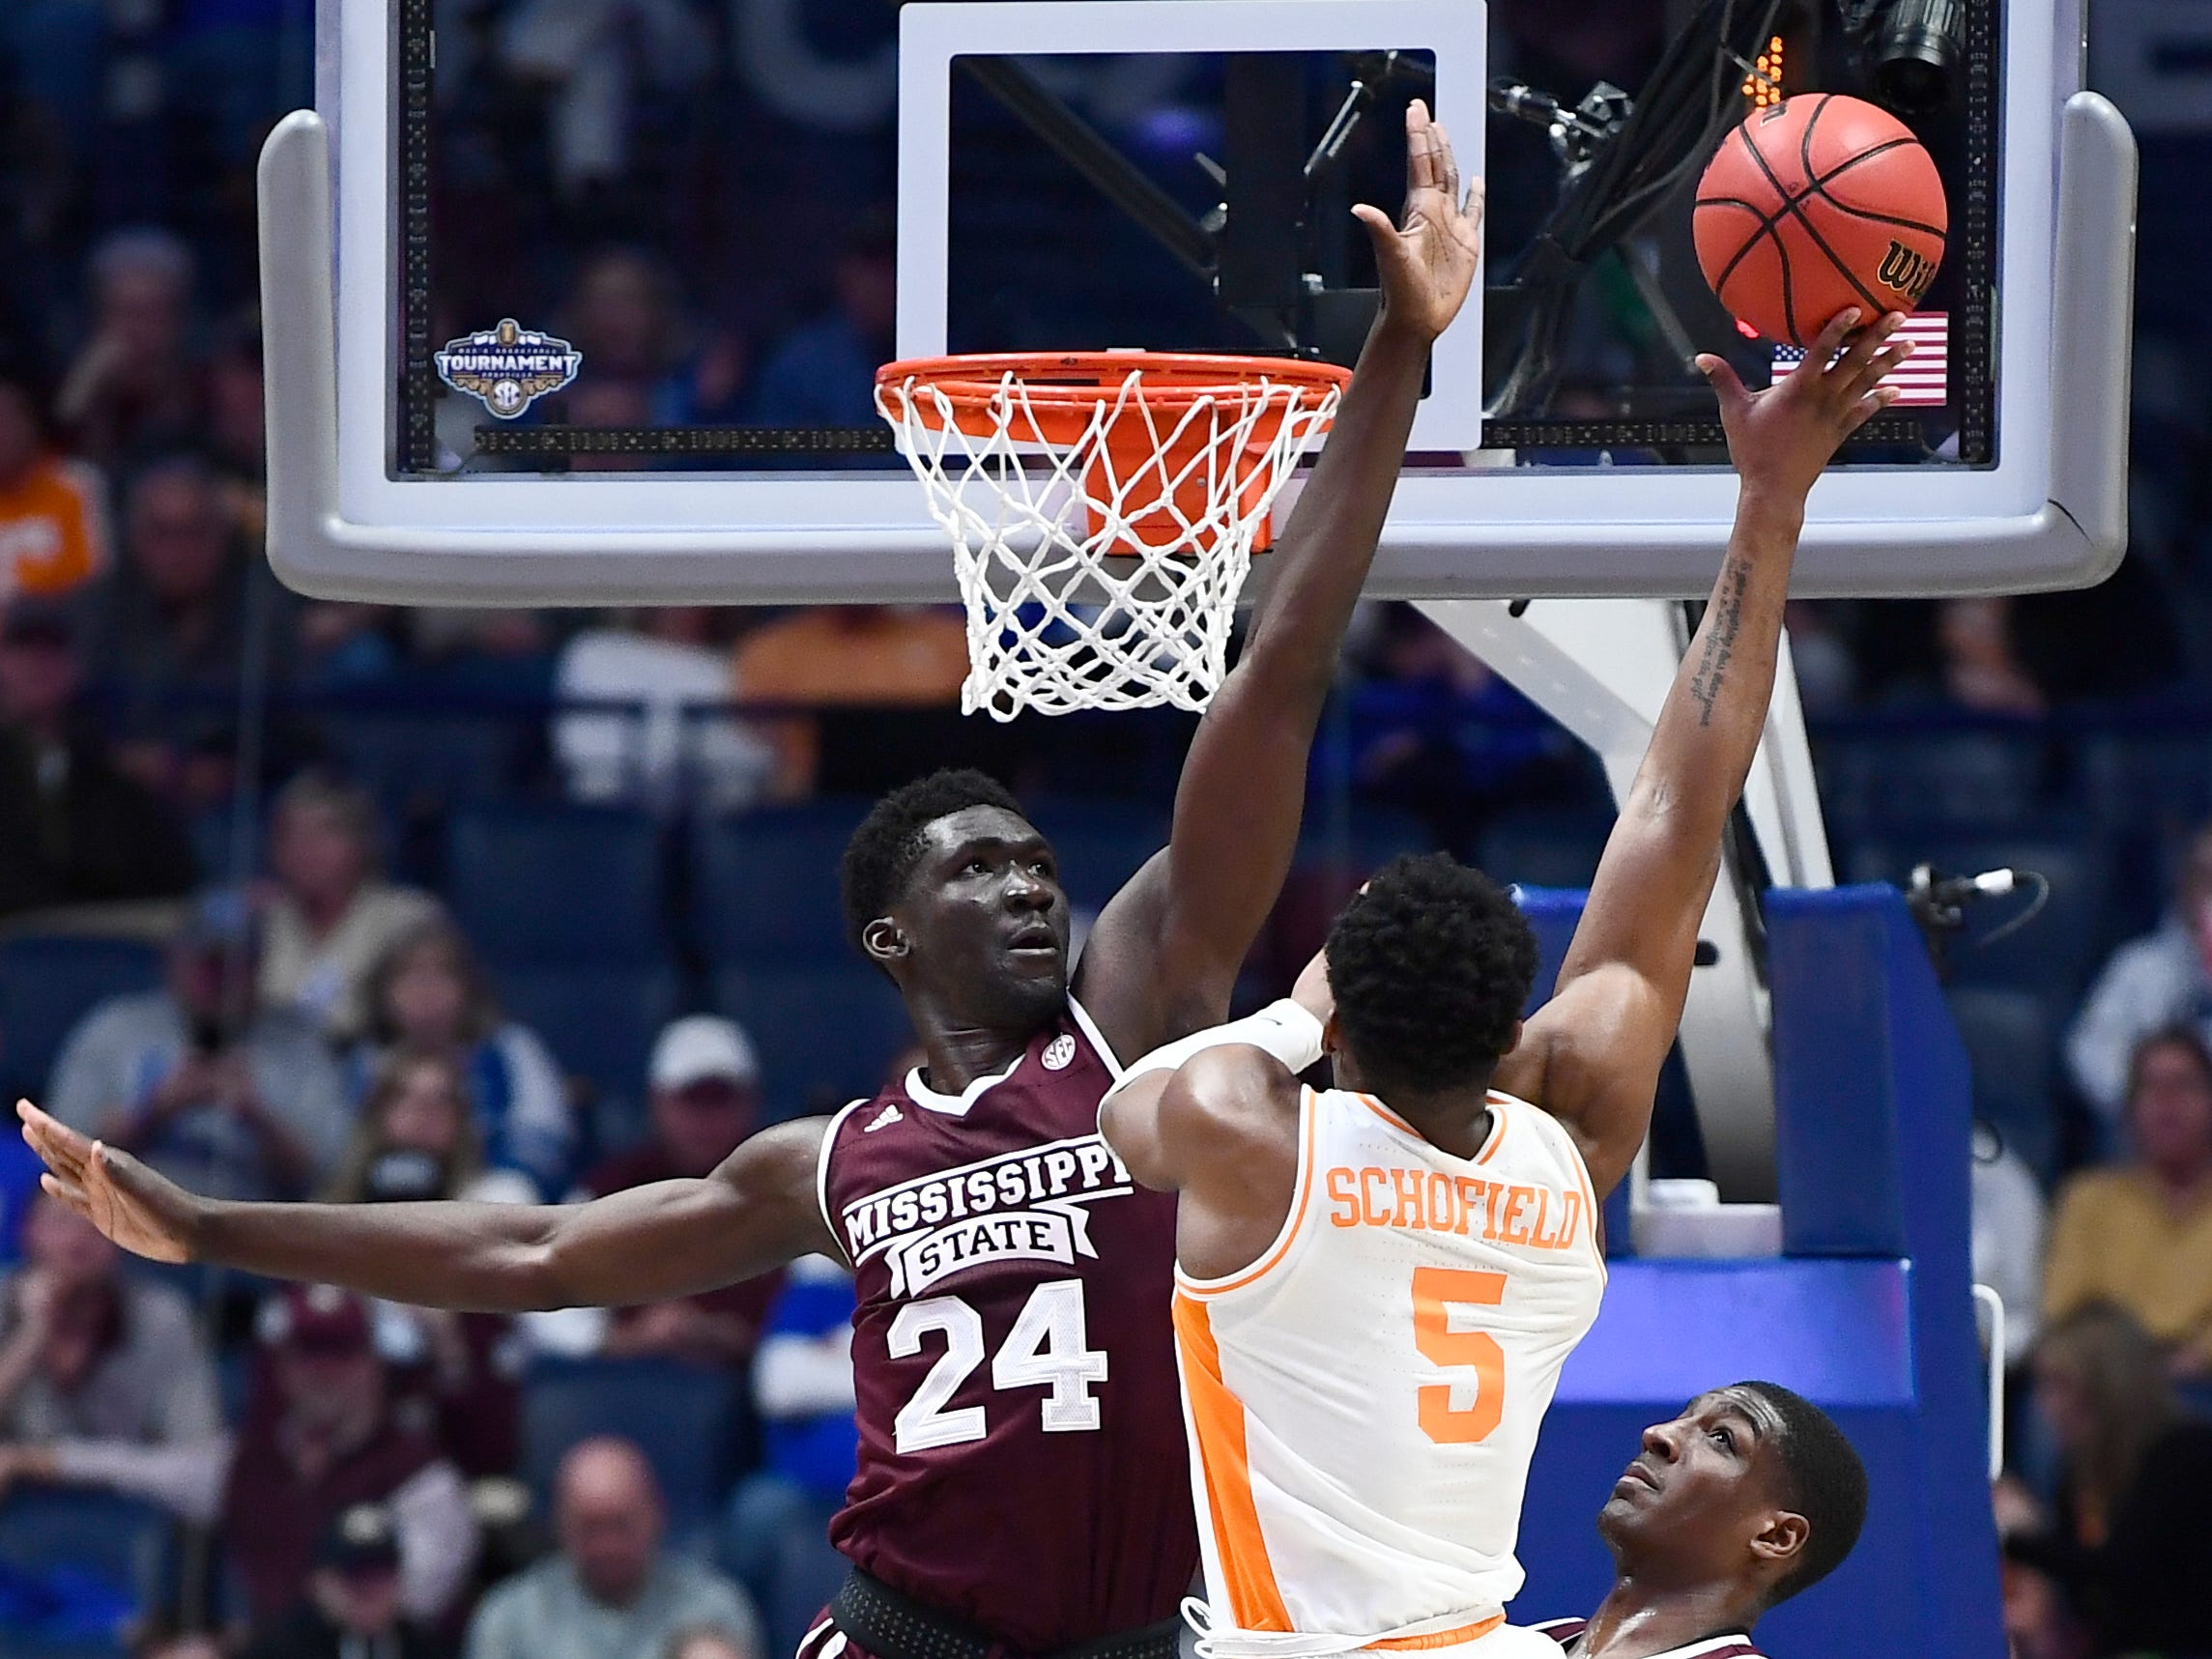 Tennessee guard Admiral Schofield (5) shoots while defended by Mississippi State forward Abdul Ado (24) during the first half of the SEC Men's Basketball Tournament game at Bridgestone Arena in Nashville, Tenn., Friday, March 15, 2019.